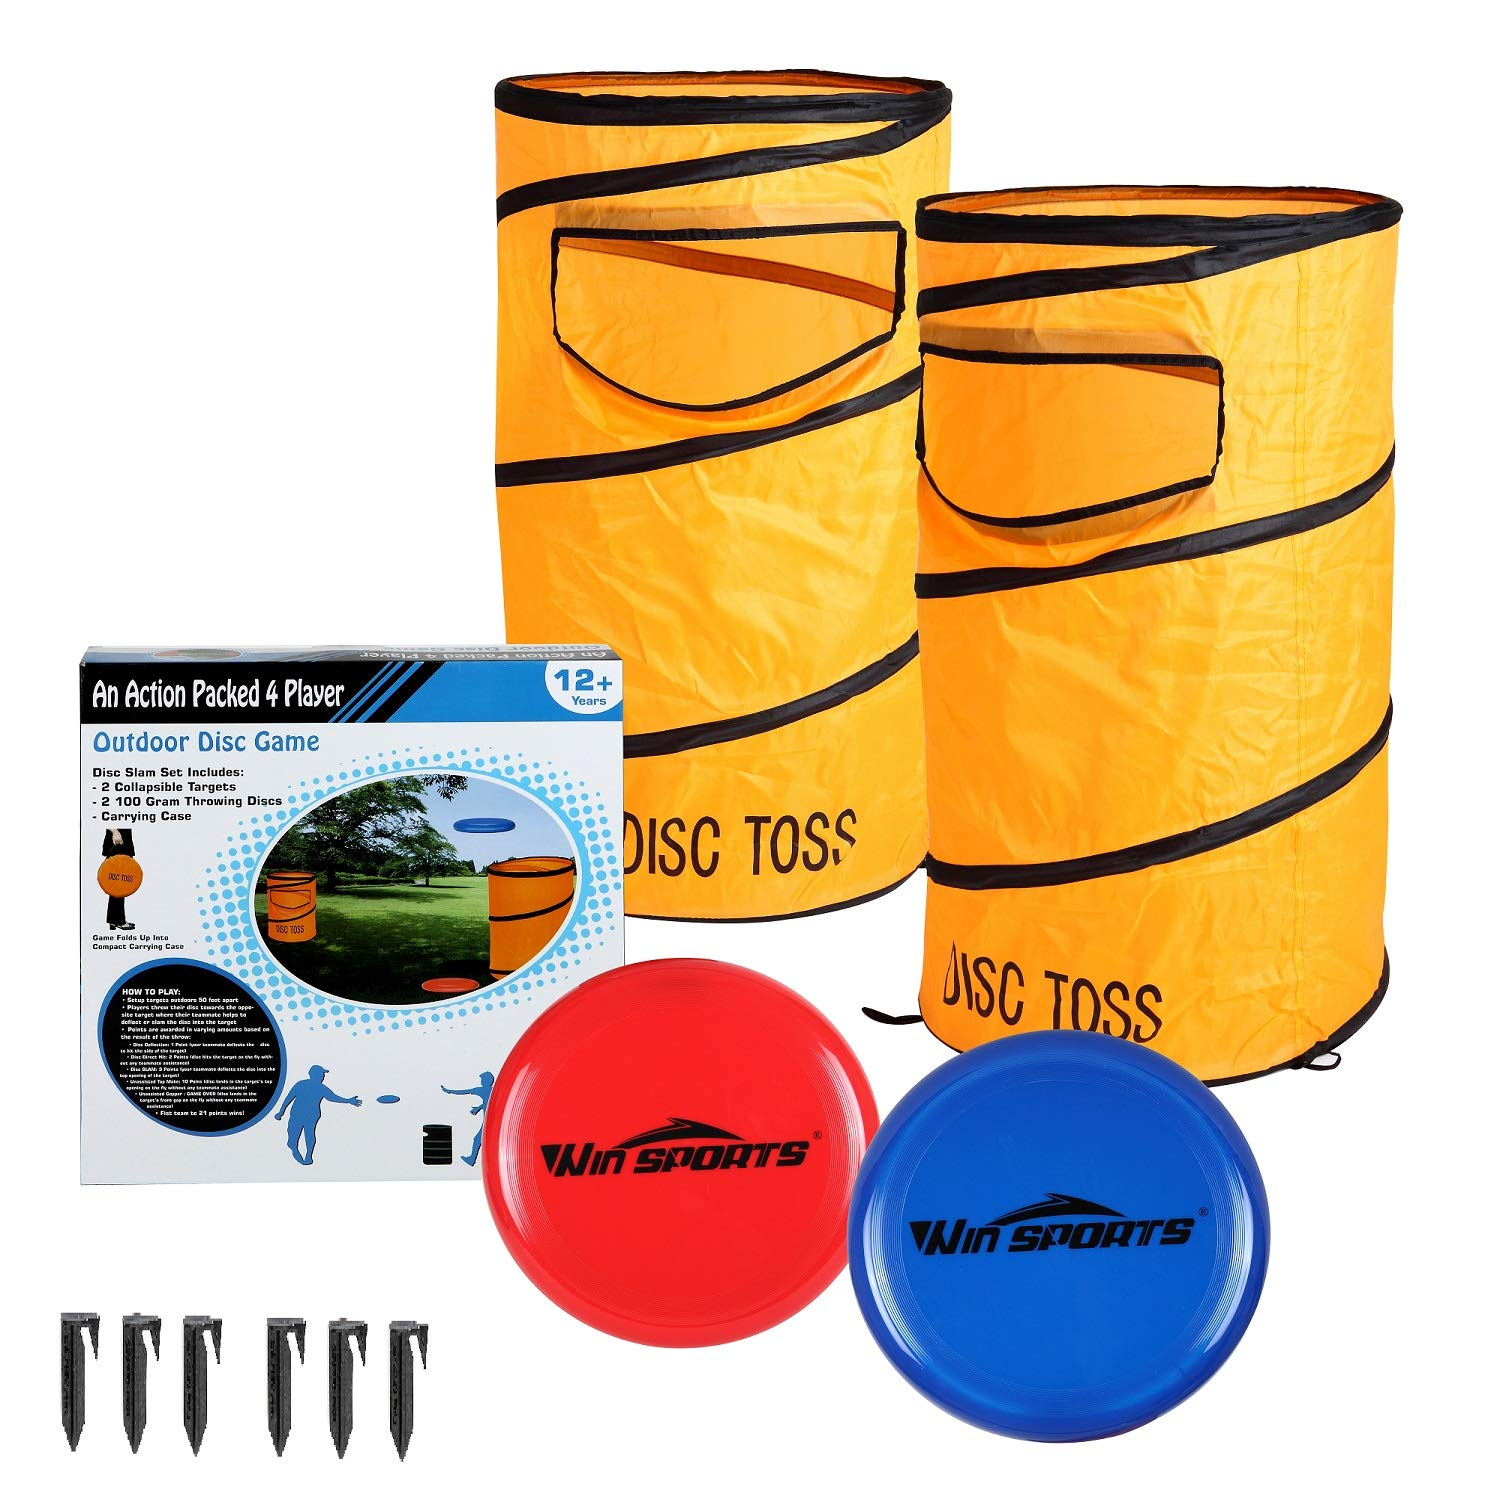 Folding Disc Slamming Game Set丨Flying Disc Toss Dunk Game Set丨Includes 2 Disc Targets with bean bag,2 Flying Discs,6 Ground Stakes,Carrying Case - Great For Backyard,Tailgating(16.1''x30.3'') by Win SPORTS